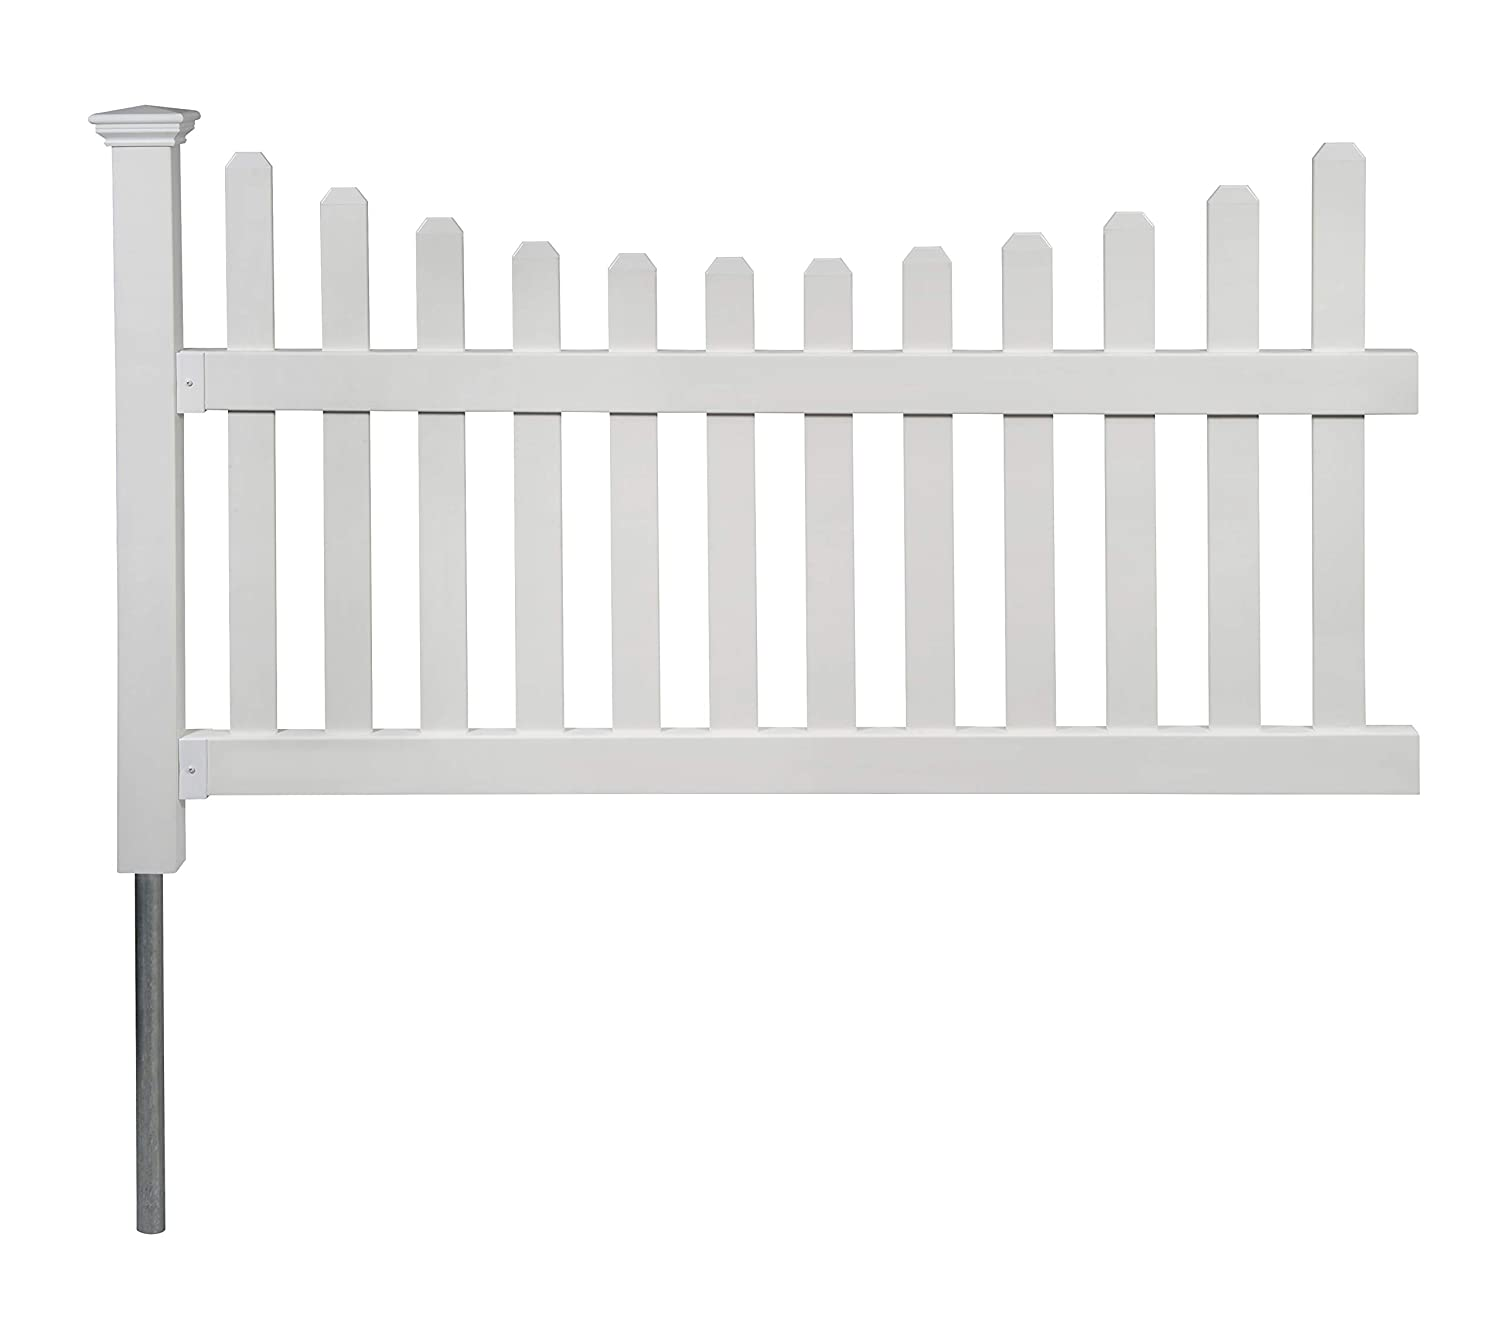 Zippity Outdoor Products ZP19041 All American Fence, White